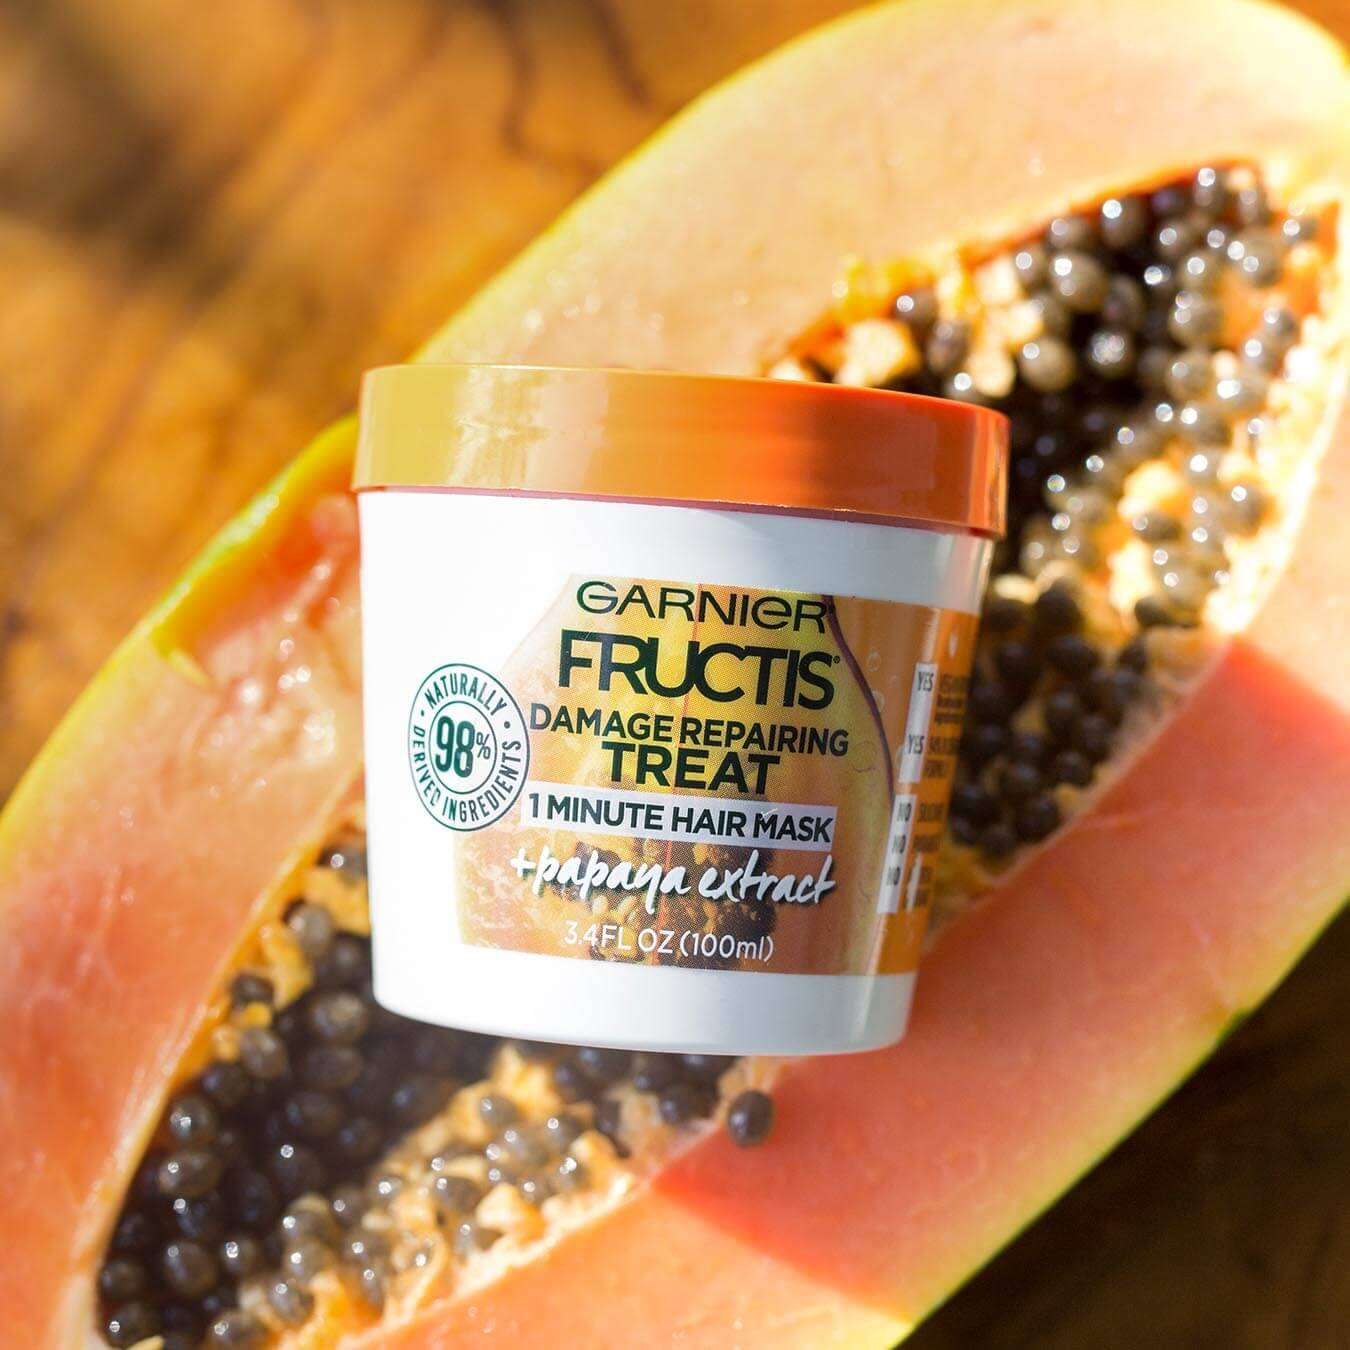 Garnier Fructis Damage Repairing Treat 1 Minute Hair Mask with Papaya Extract sitting on half a papaya on a wooden table.